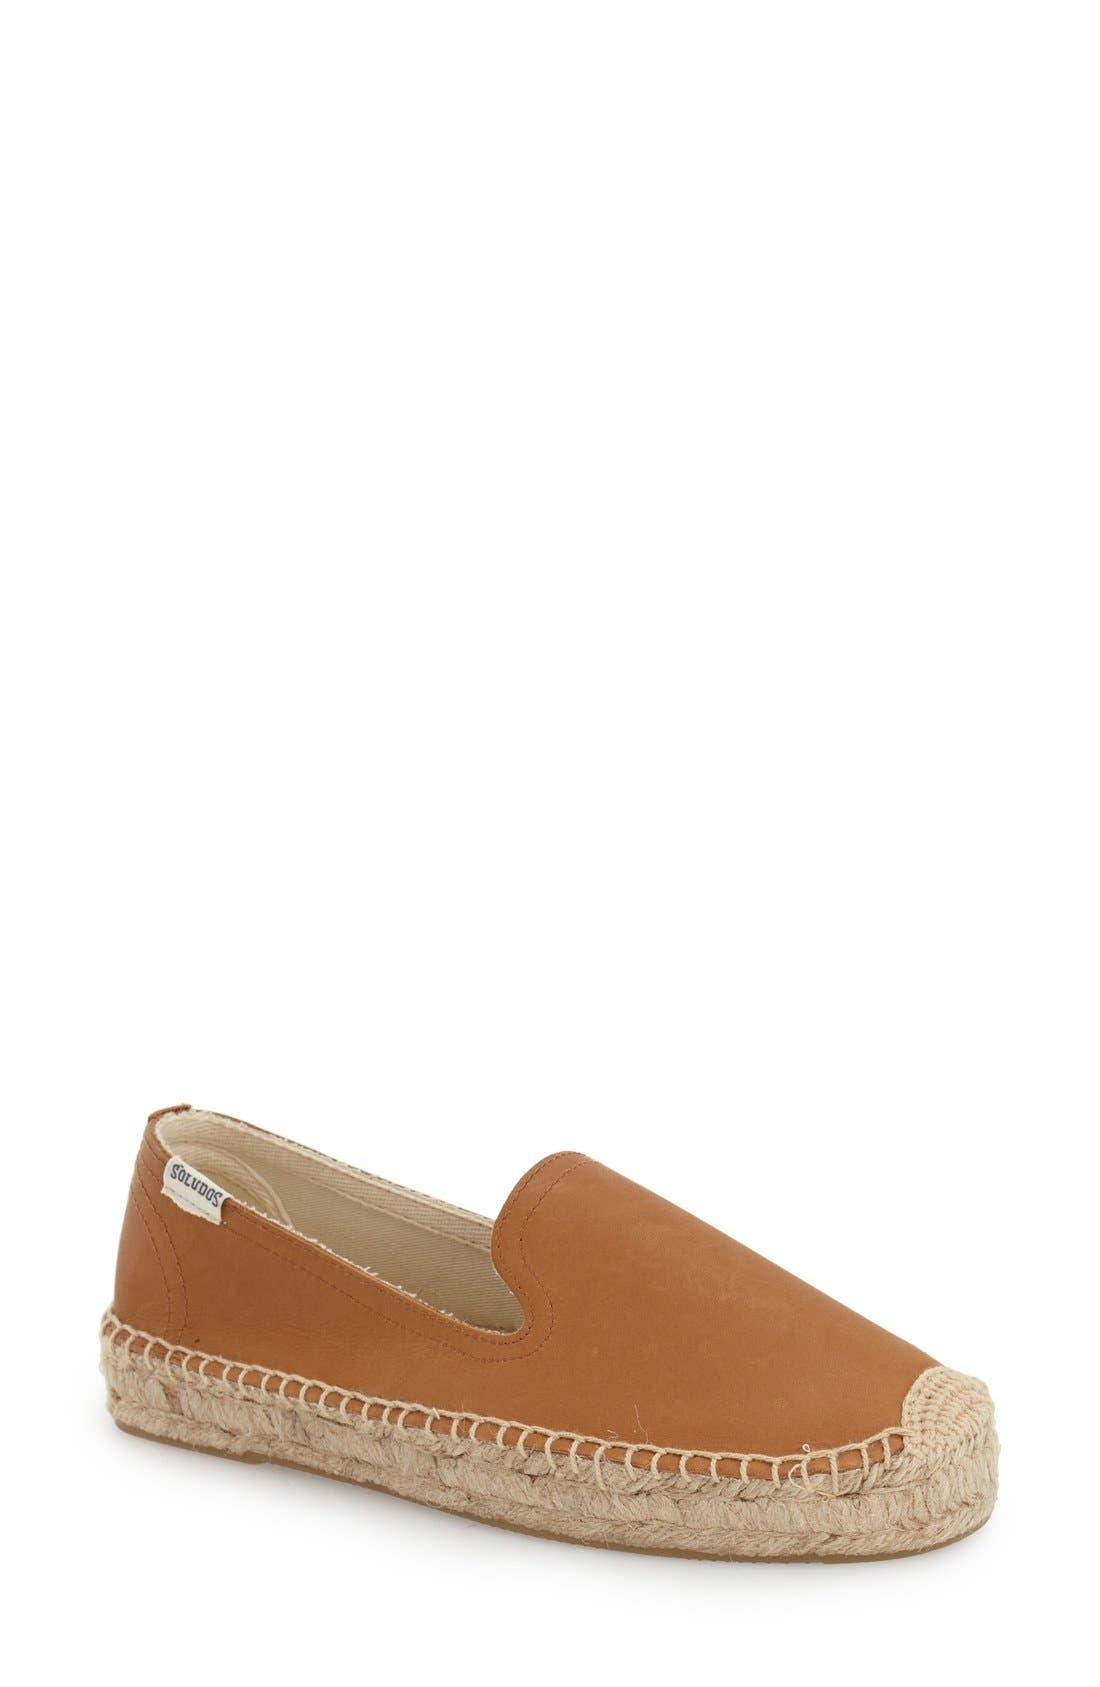 'Smoking' Espadrille Platform Shoe,                             Main thumbnail 1, color,                             TAN LEATHER